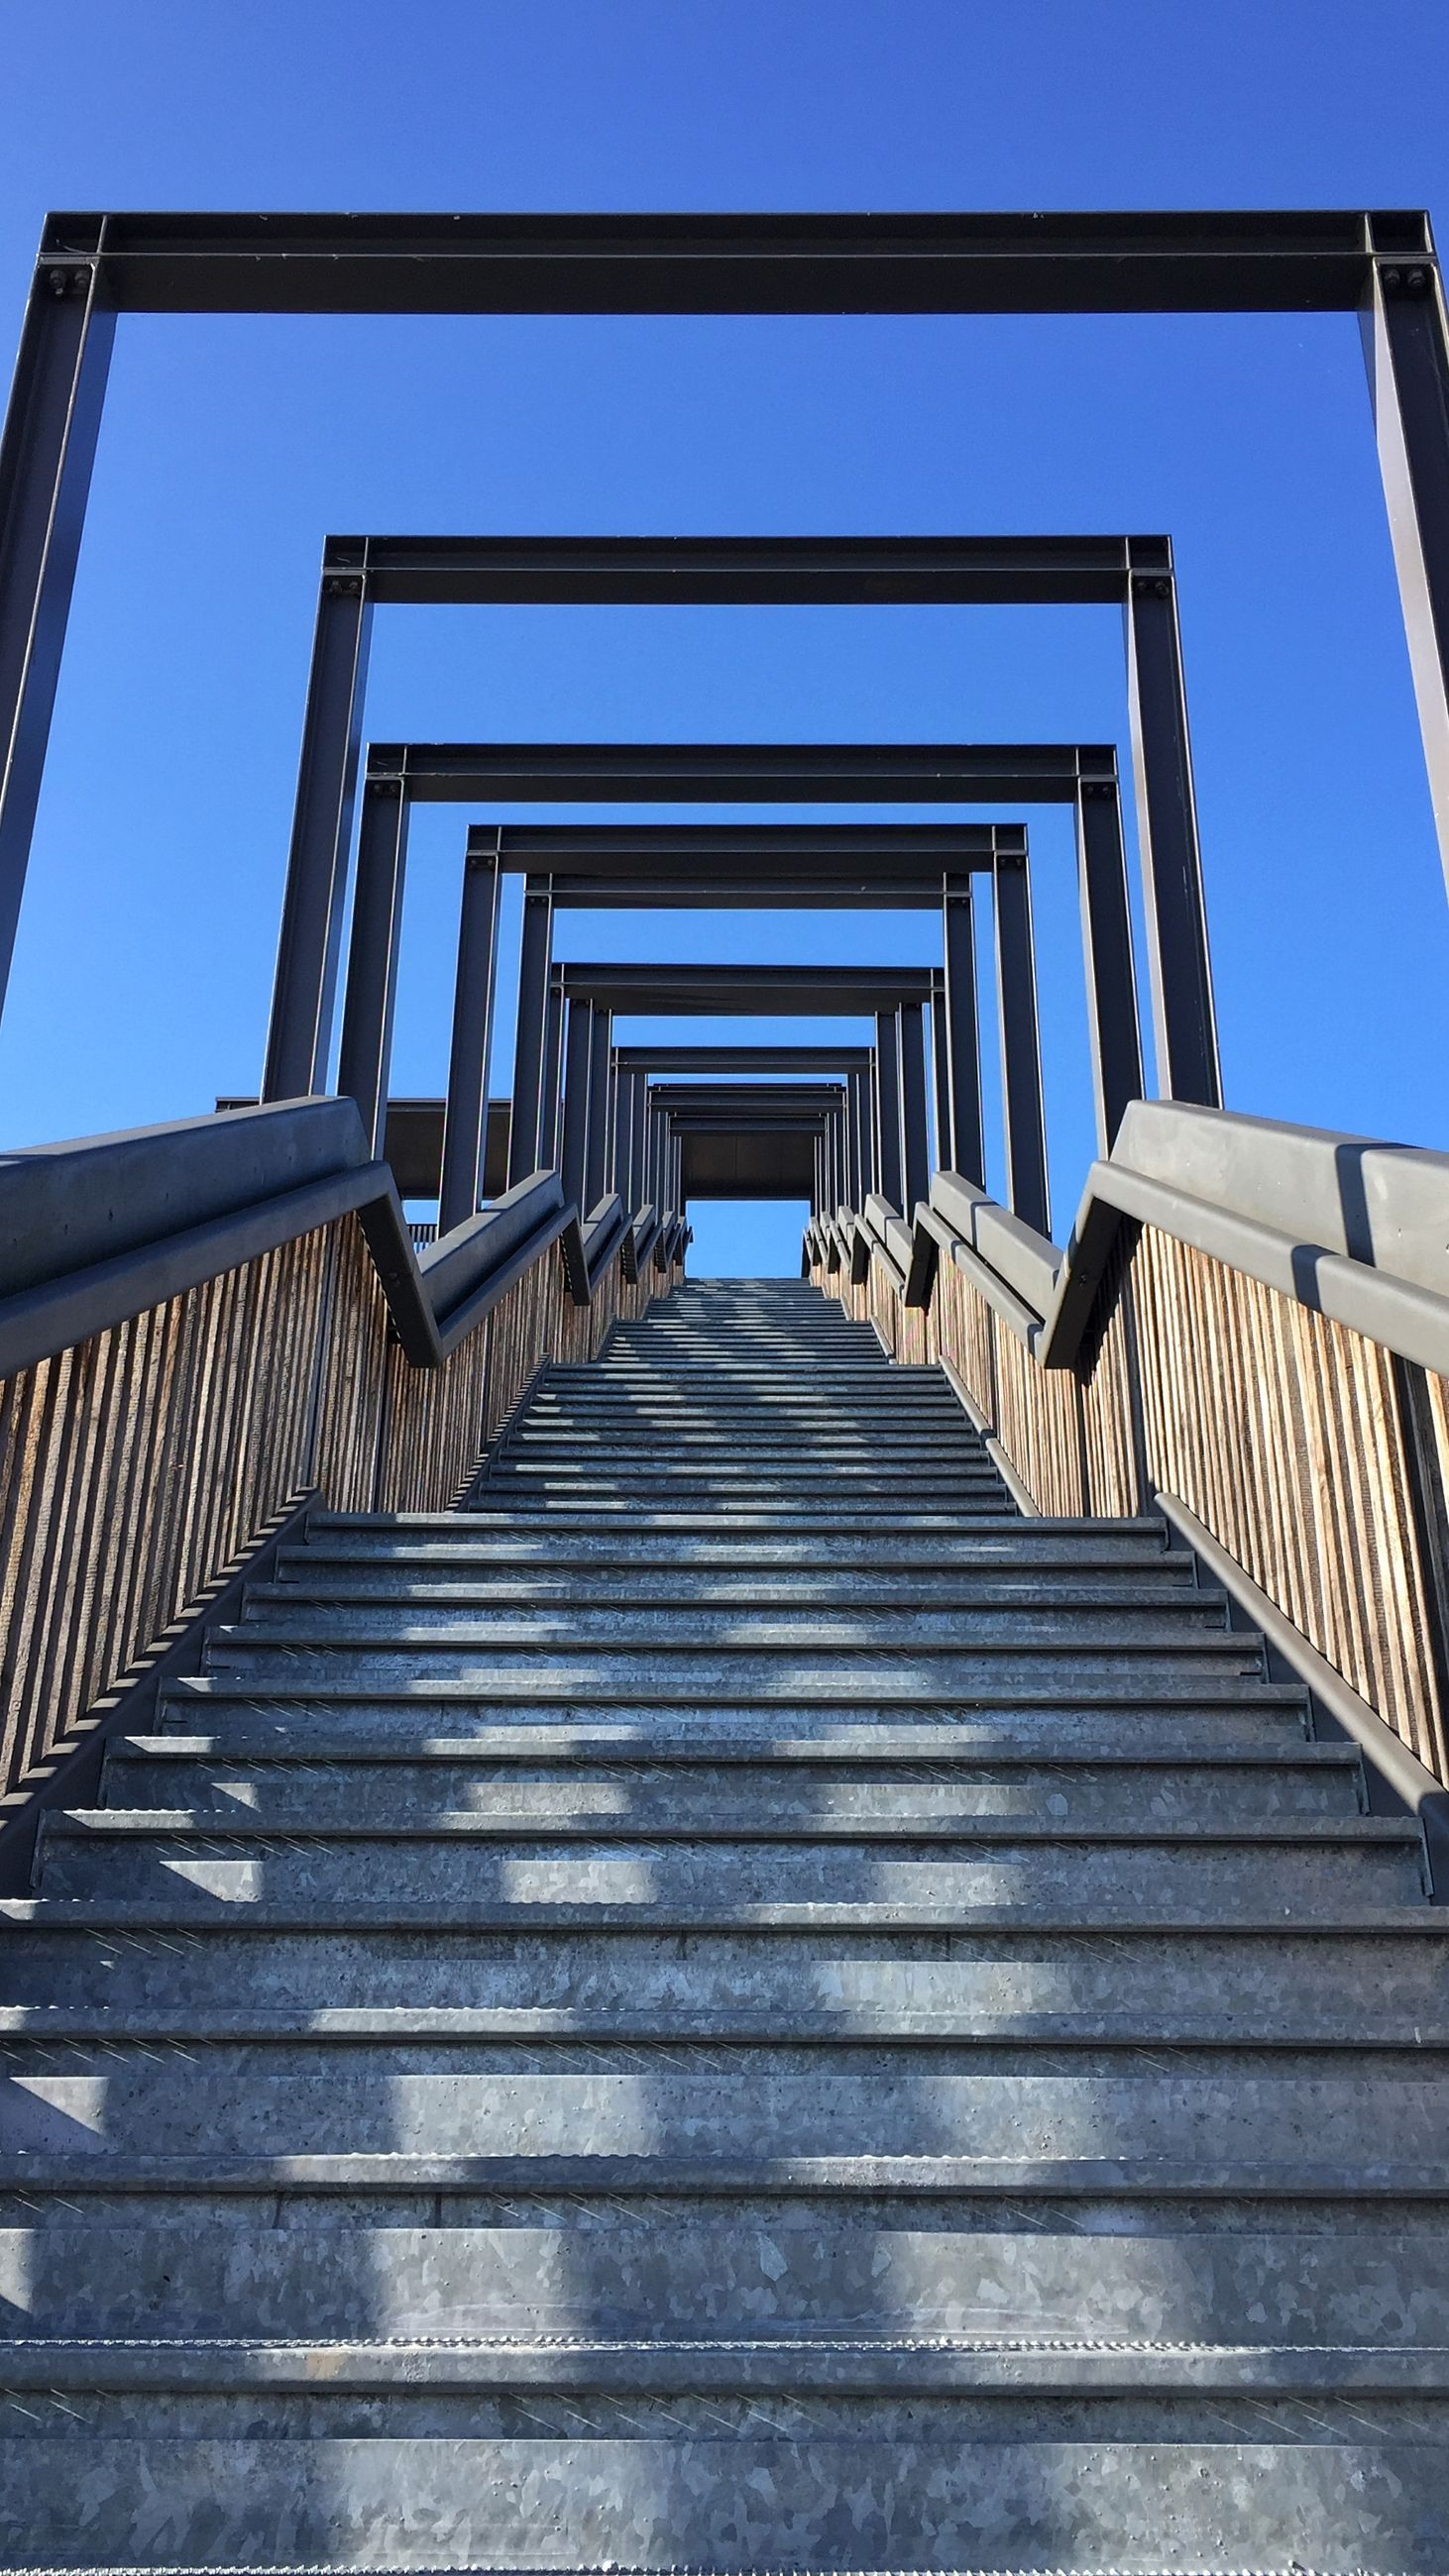 architecture, built structure, building exterior, low angle view, steps, steps and staircases, staircase, blue, railing, house, clear sky, residential structure, roof, sky, building, stairs, sunlight, the way forward, residential building, day